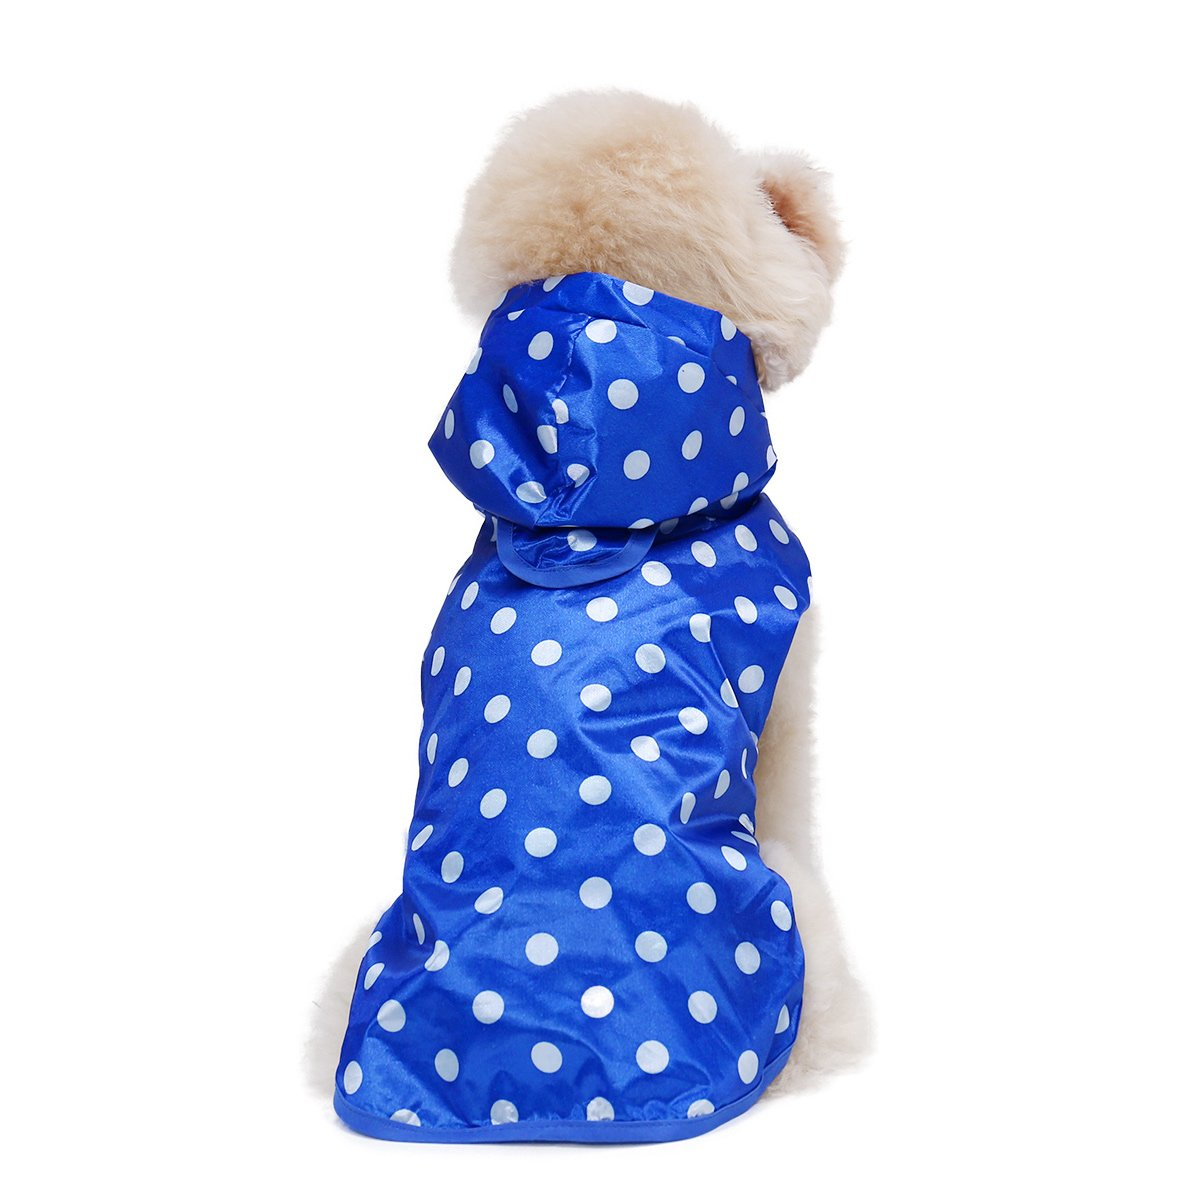 Pet Dog Raincoat Dot Puppy Waterproof Clothes Hoodie Jacket Puppy Raincoat For Small Large Puppy Pet Rainy With Hood